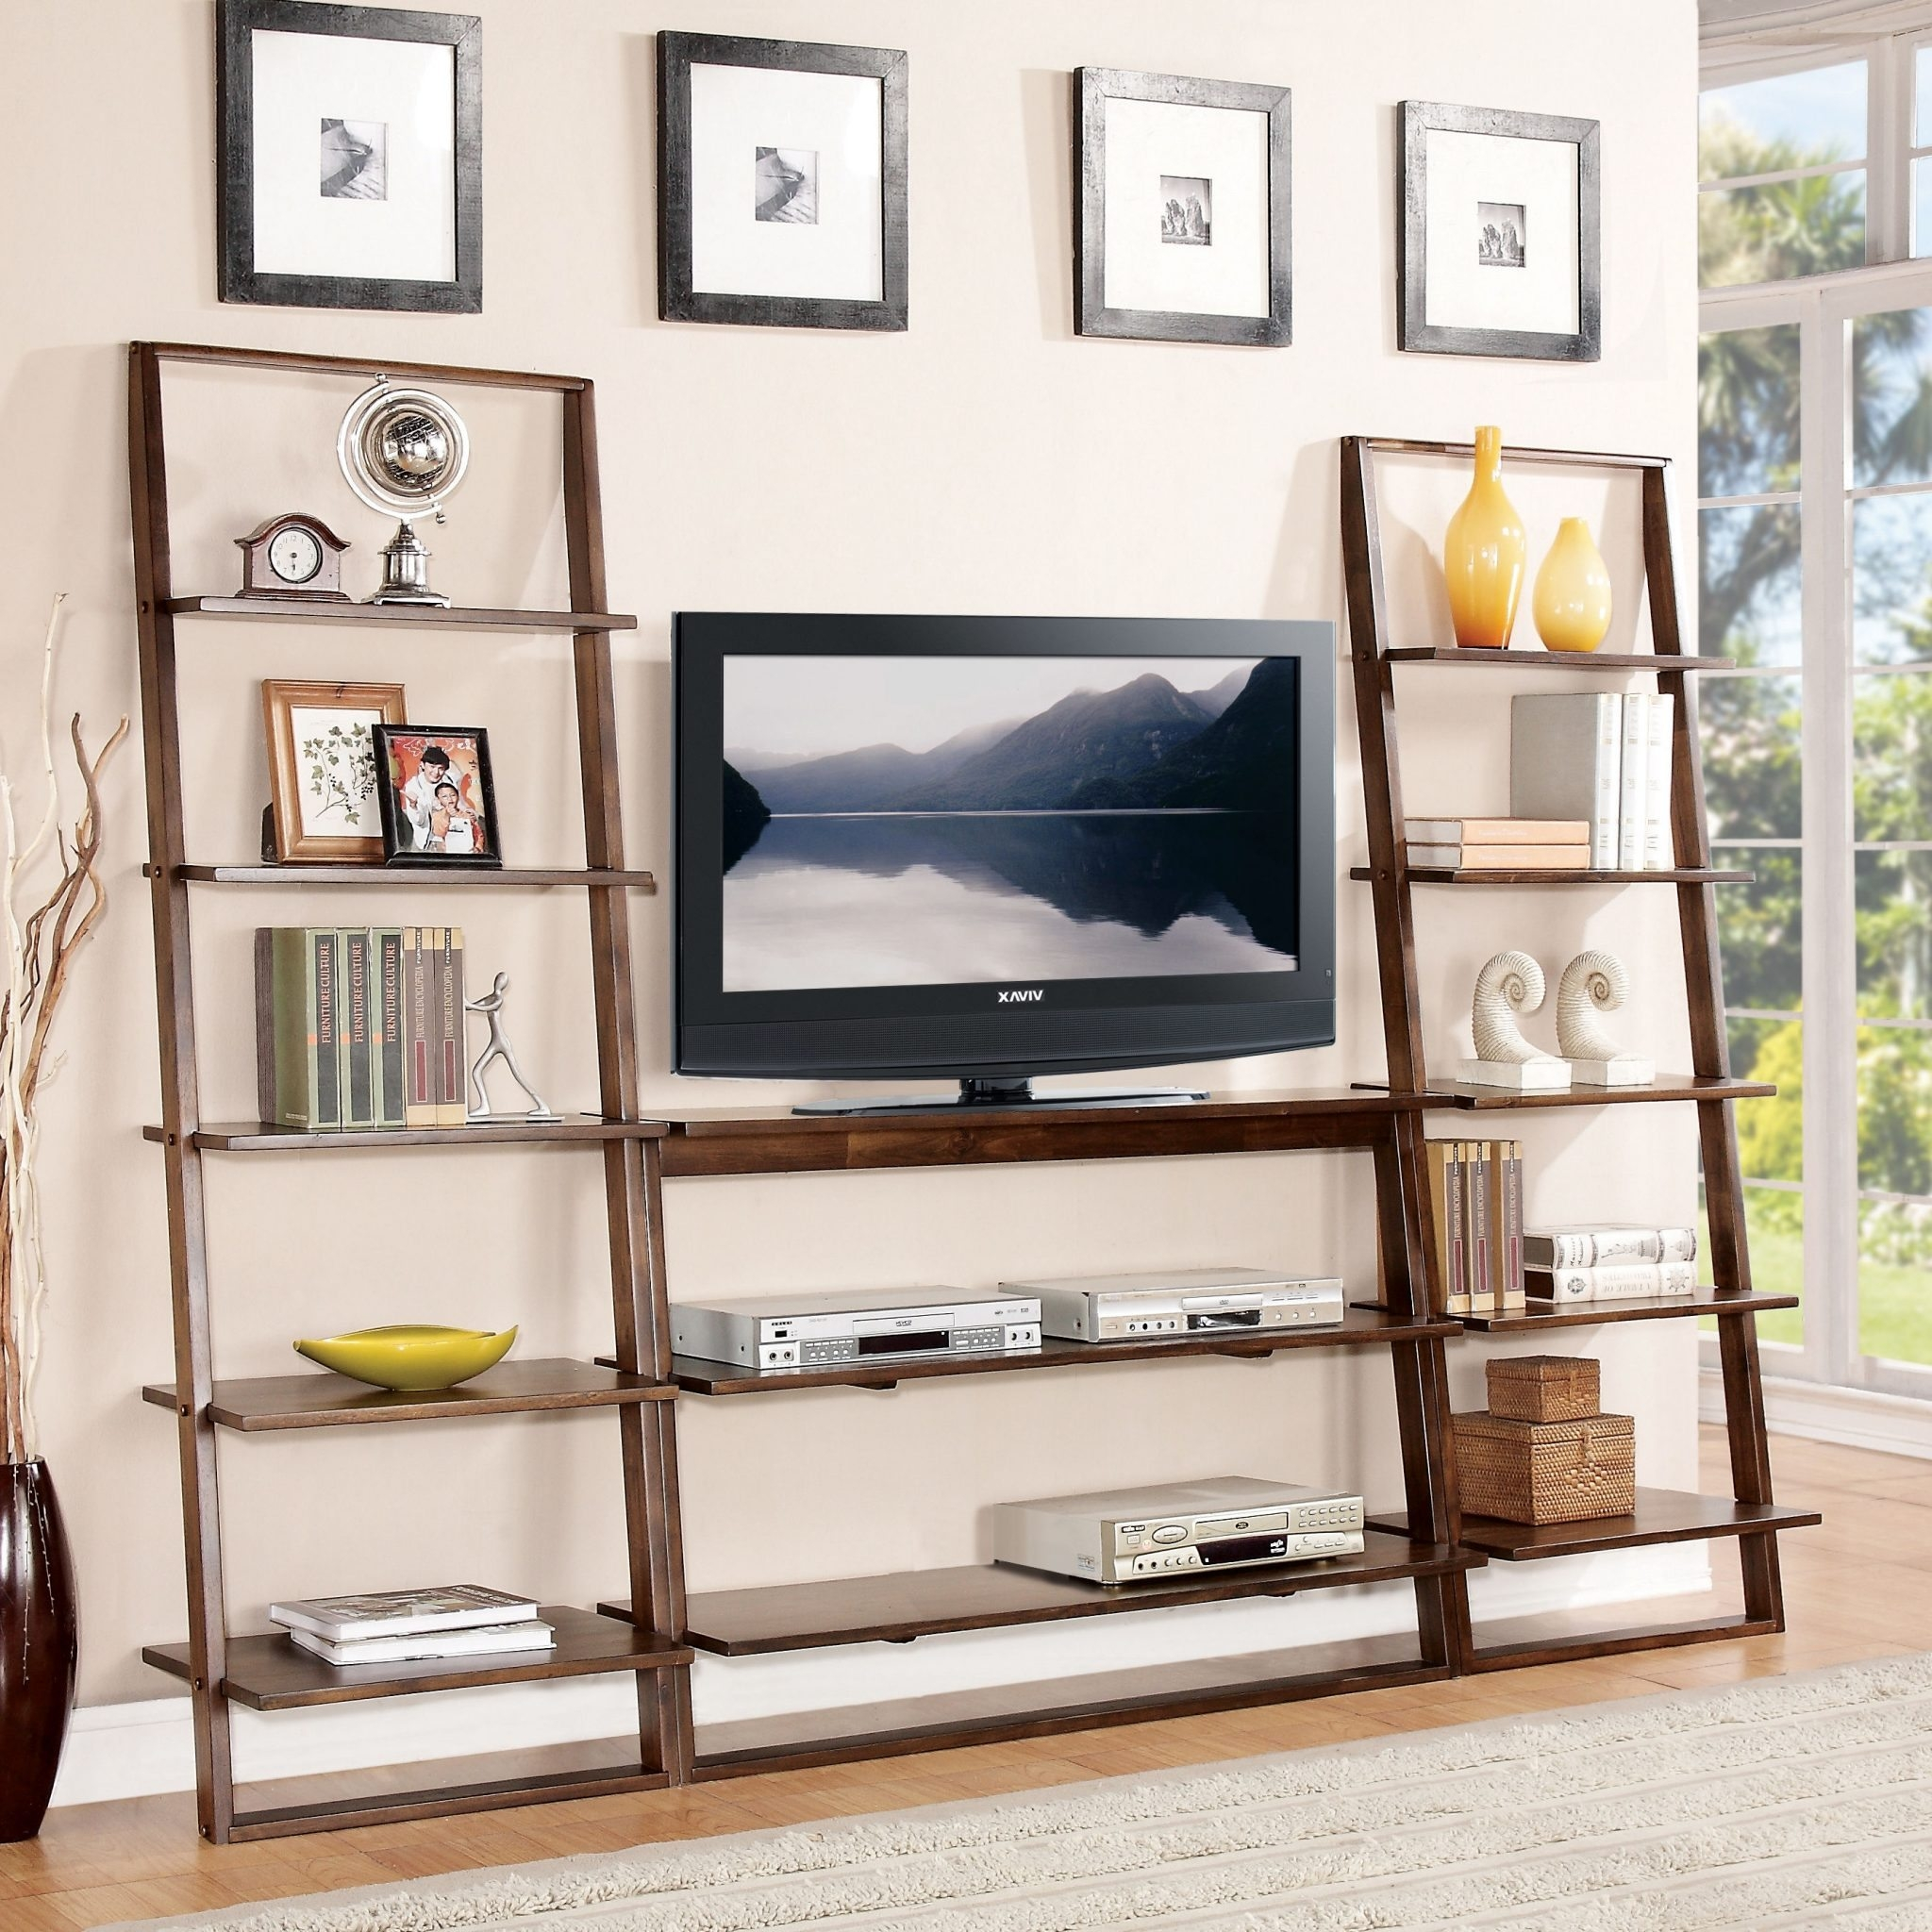 Tv Stands Inspire Black And White Tv Stand Bookshelf Design Ideas Intended For Bookshelf Tv Unit (#15 of 15)